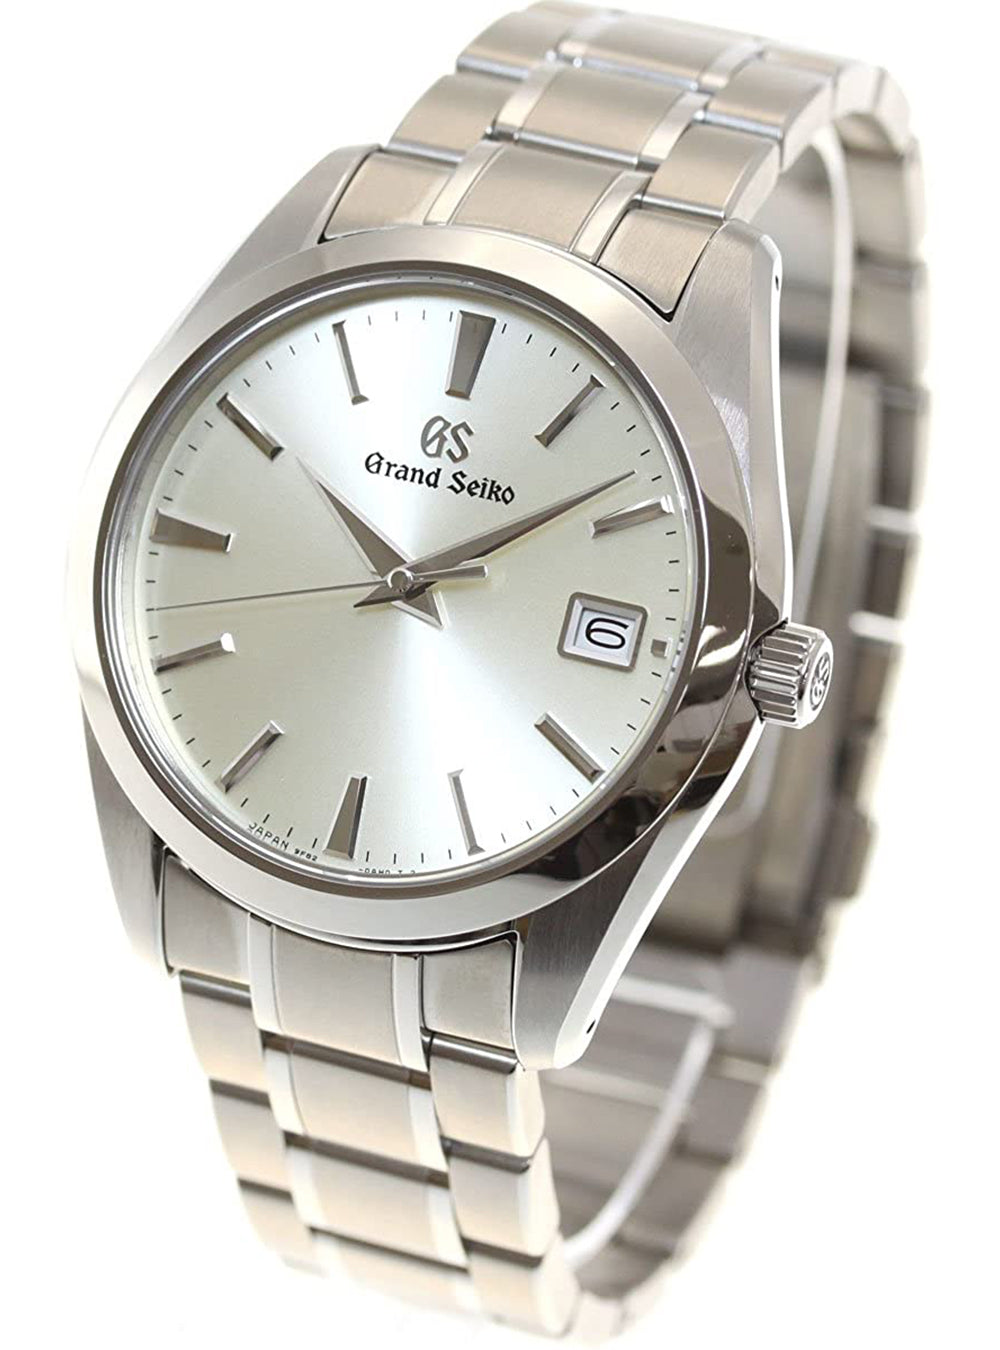 GRAND SEIKO HERITAGE COLLECTION SBGV229 MADE IN JAPAN JDM